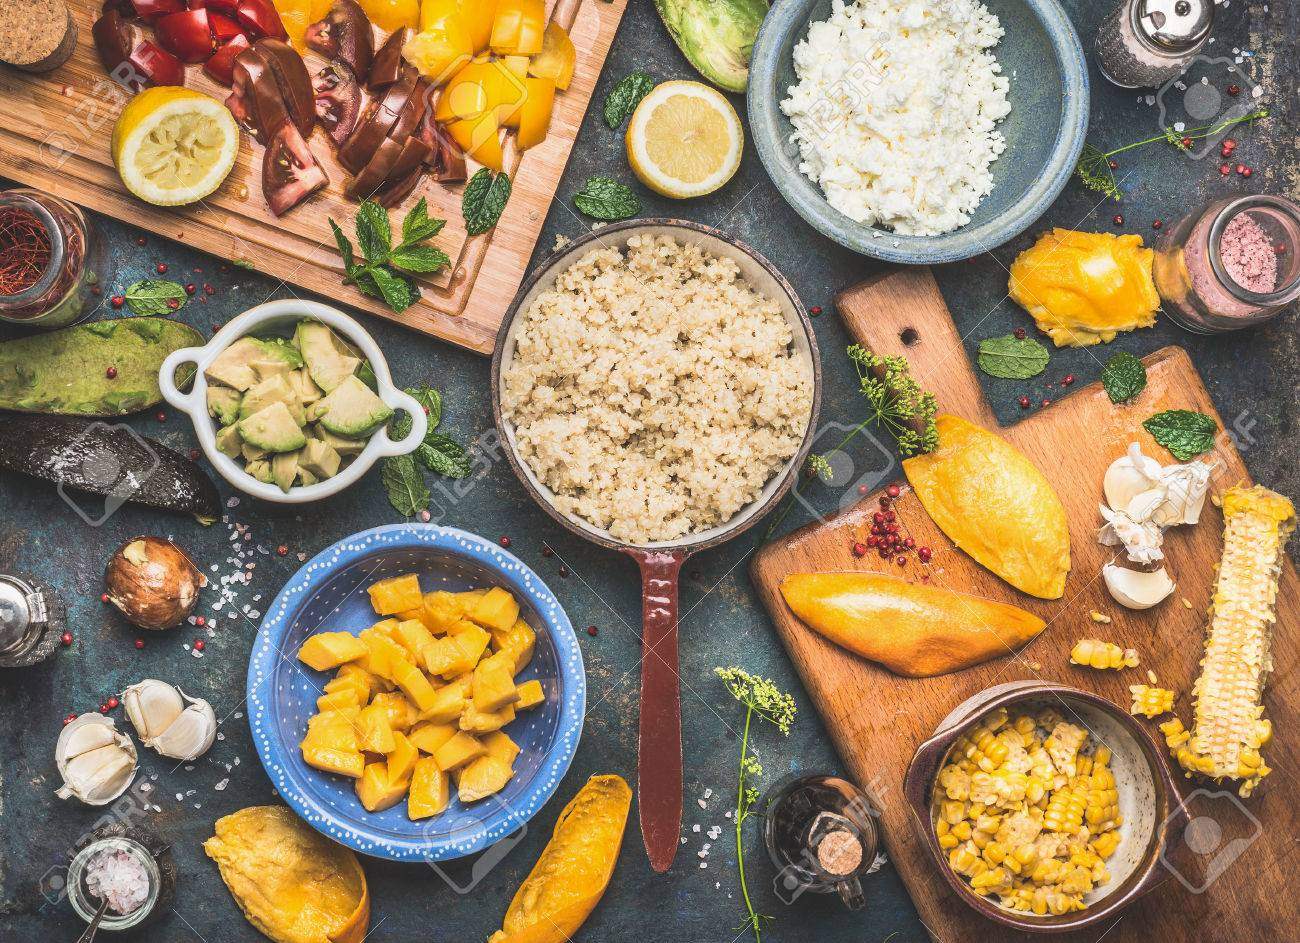 Quinoa salad preparation with vegetables and fruits cooking ingredients on dark rustic background, top view. Superfood, healthy Eating or vegan food concept - 59607337